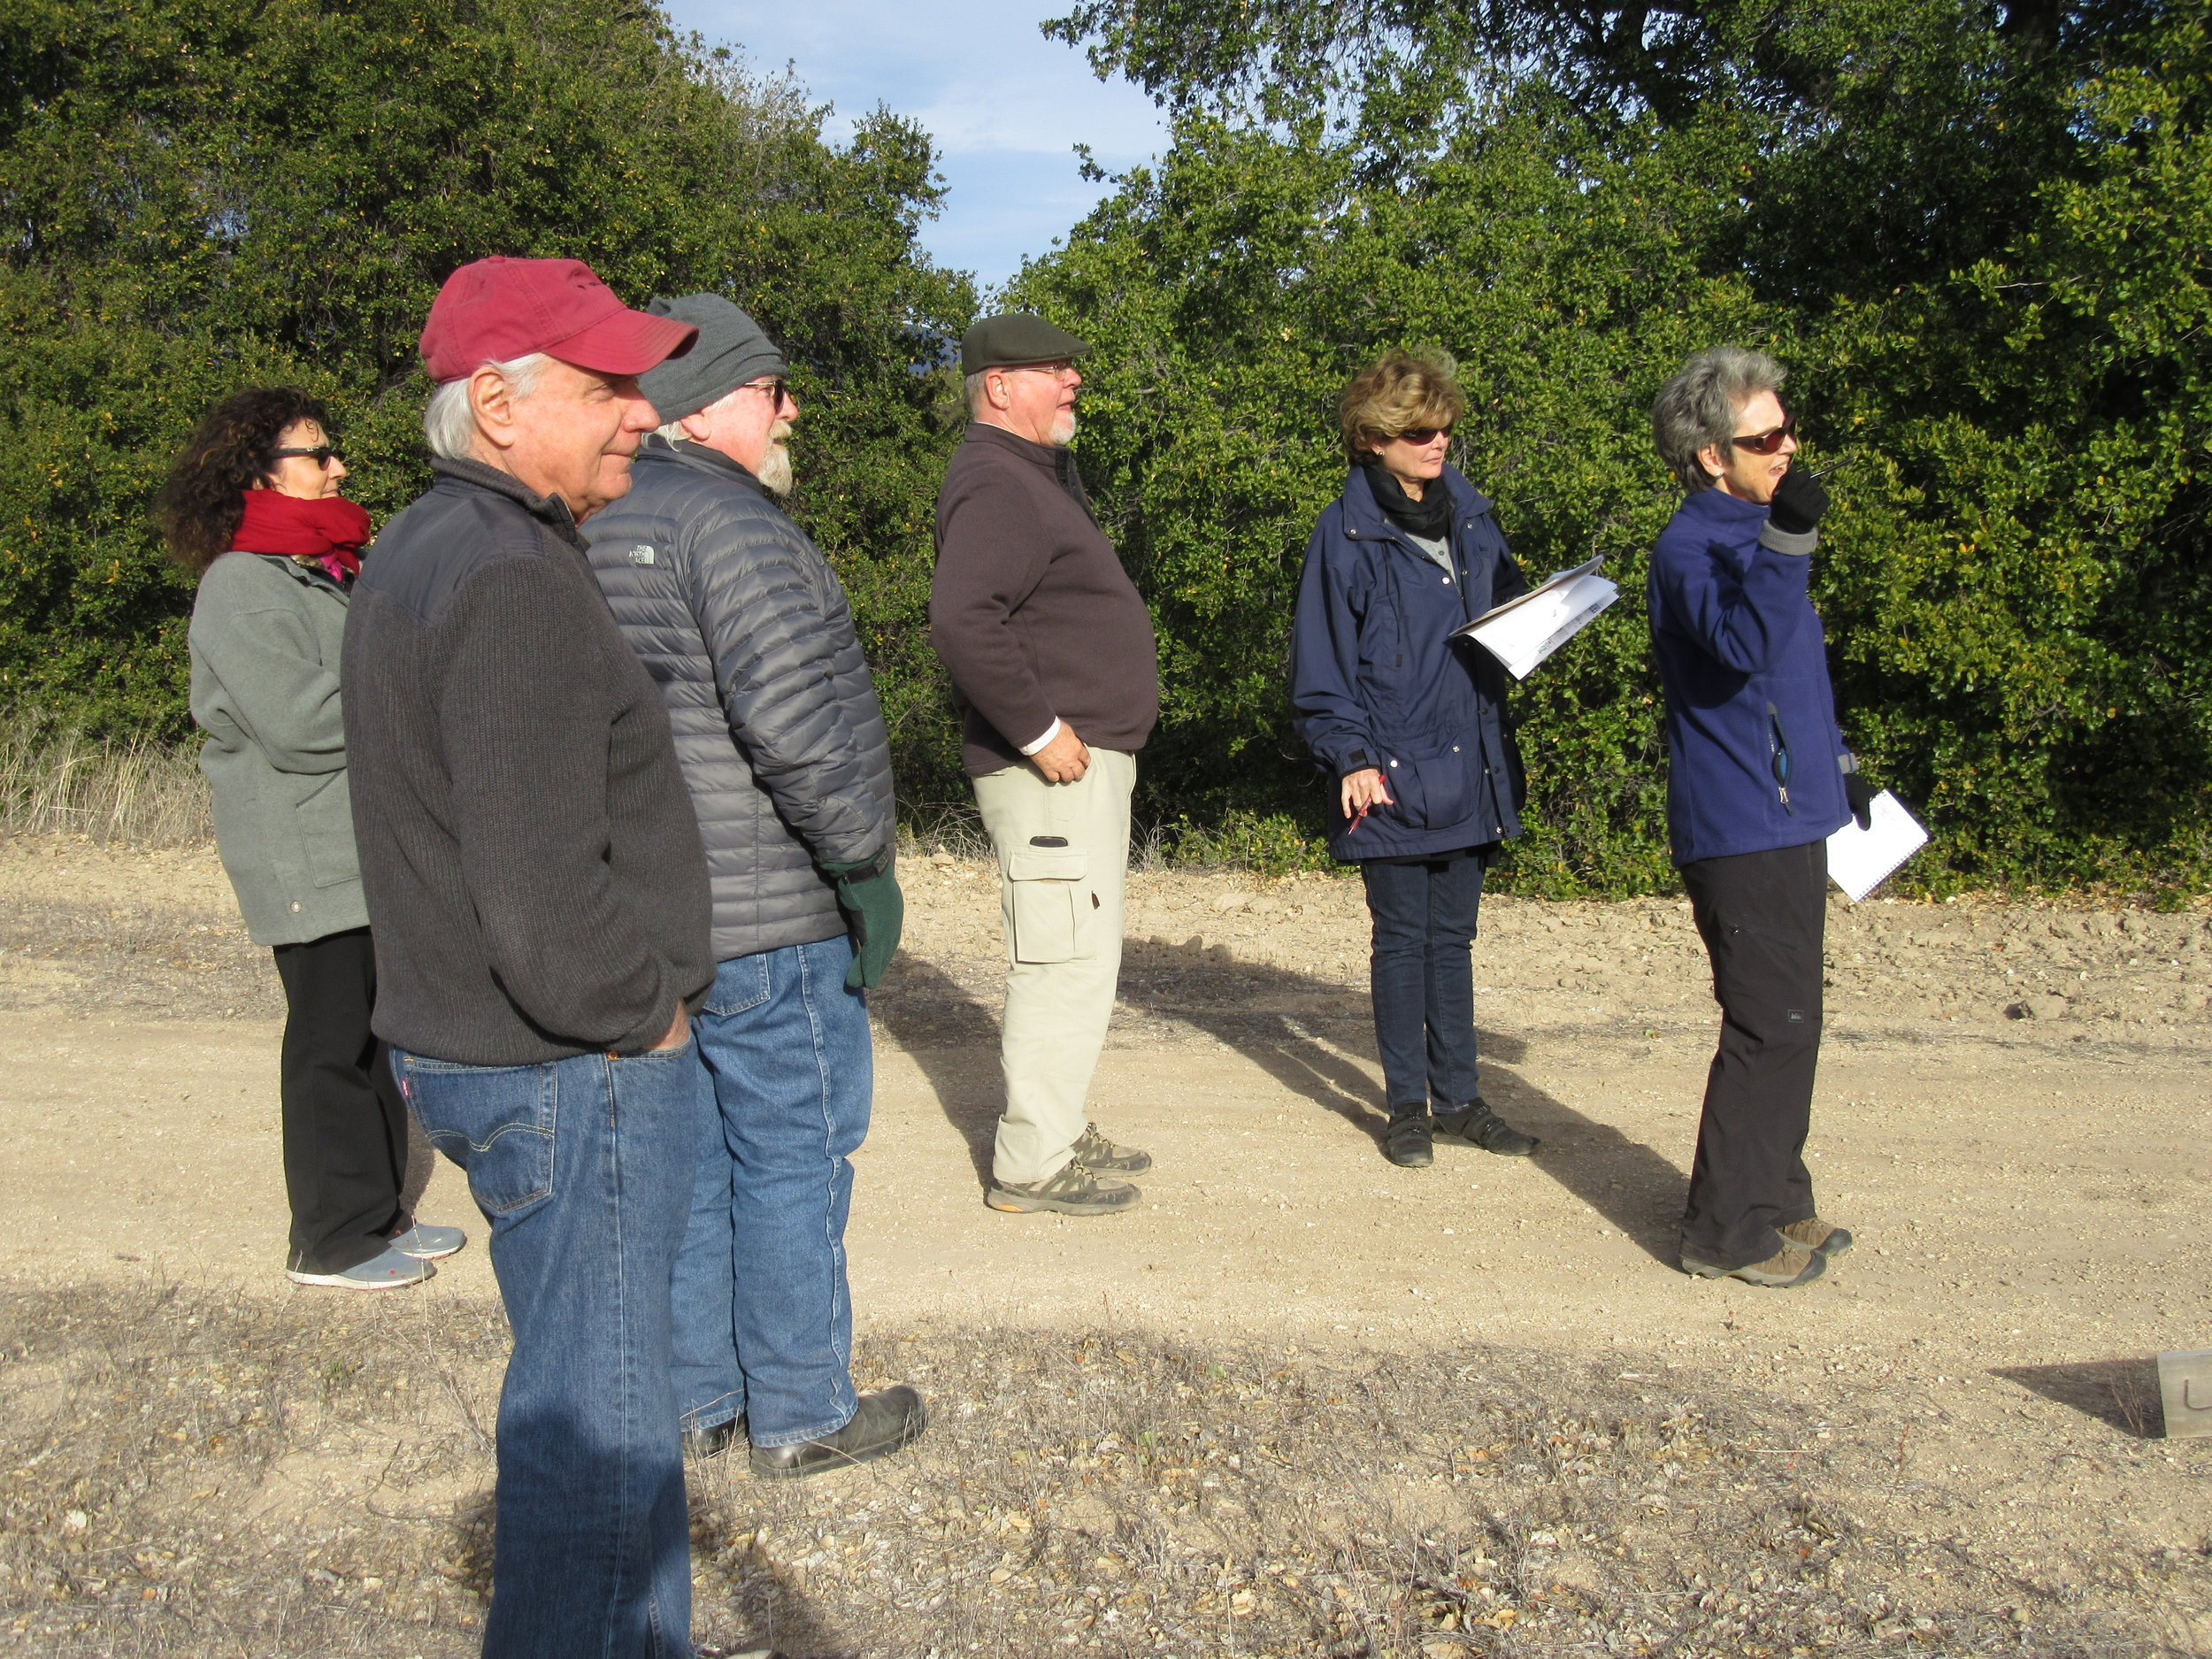 MEMBERS OF THE SIGN COMMITTEE walk the property to discuss the signage options. (Left to right): Marta Flores, sign advocate; Jim Whitson, board member;Buzz Glasky, manager/caretaker; Bryon Pinckert, architect volunteer; Nancy Pinckert, graphic desinger; and Margaret Magnus, communications director. (Photo: Sam Ervin, January 2016)